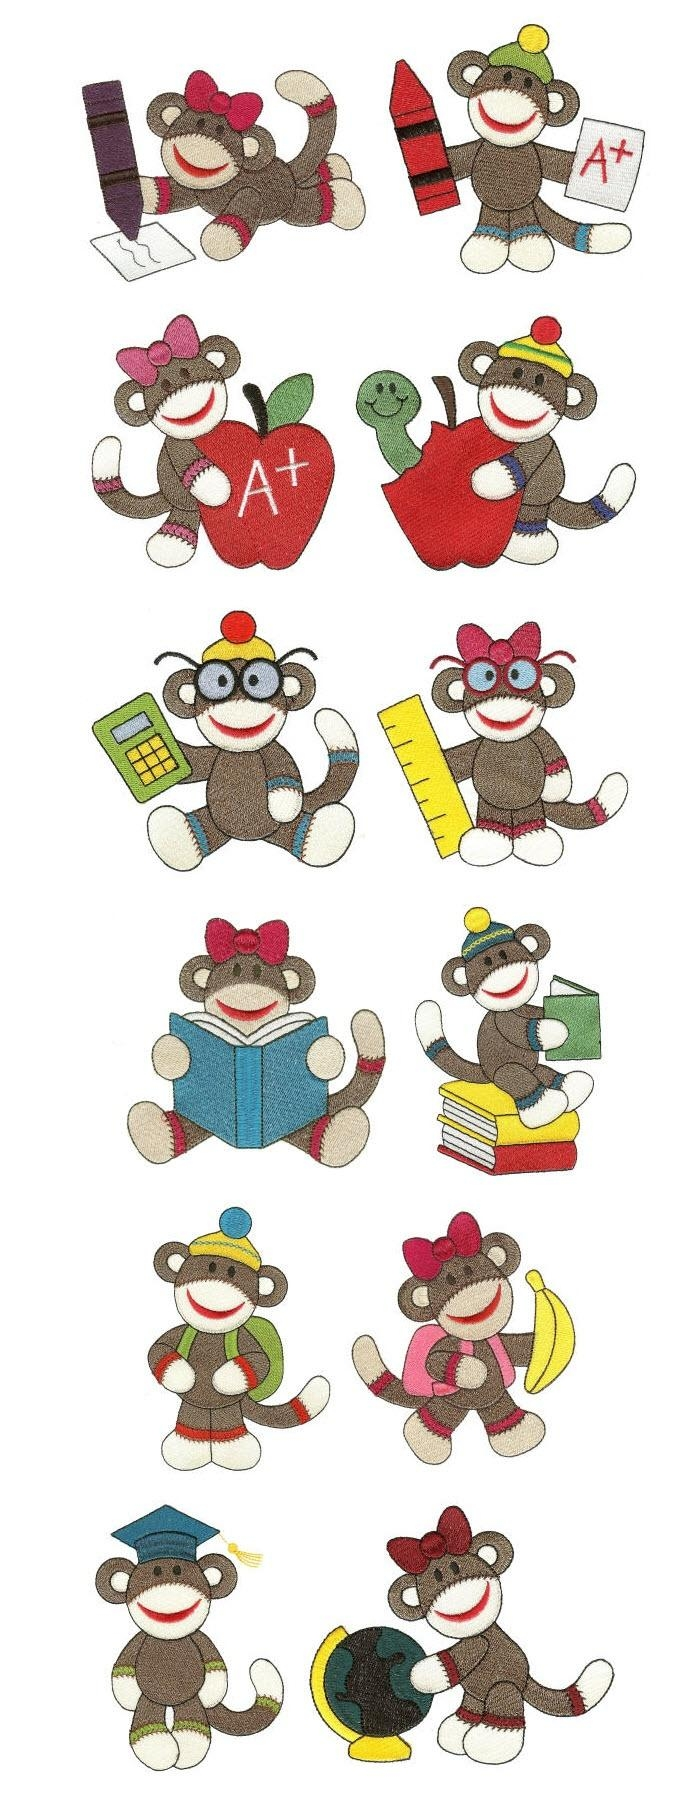 627 Best Images Animaux D'ailleurs Images On Pinterest | Animals throughout Sock Monkey Wall Art